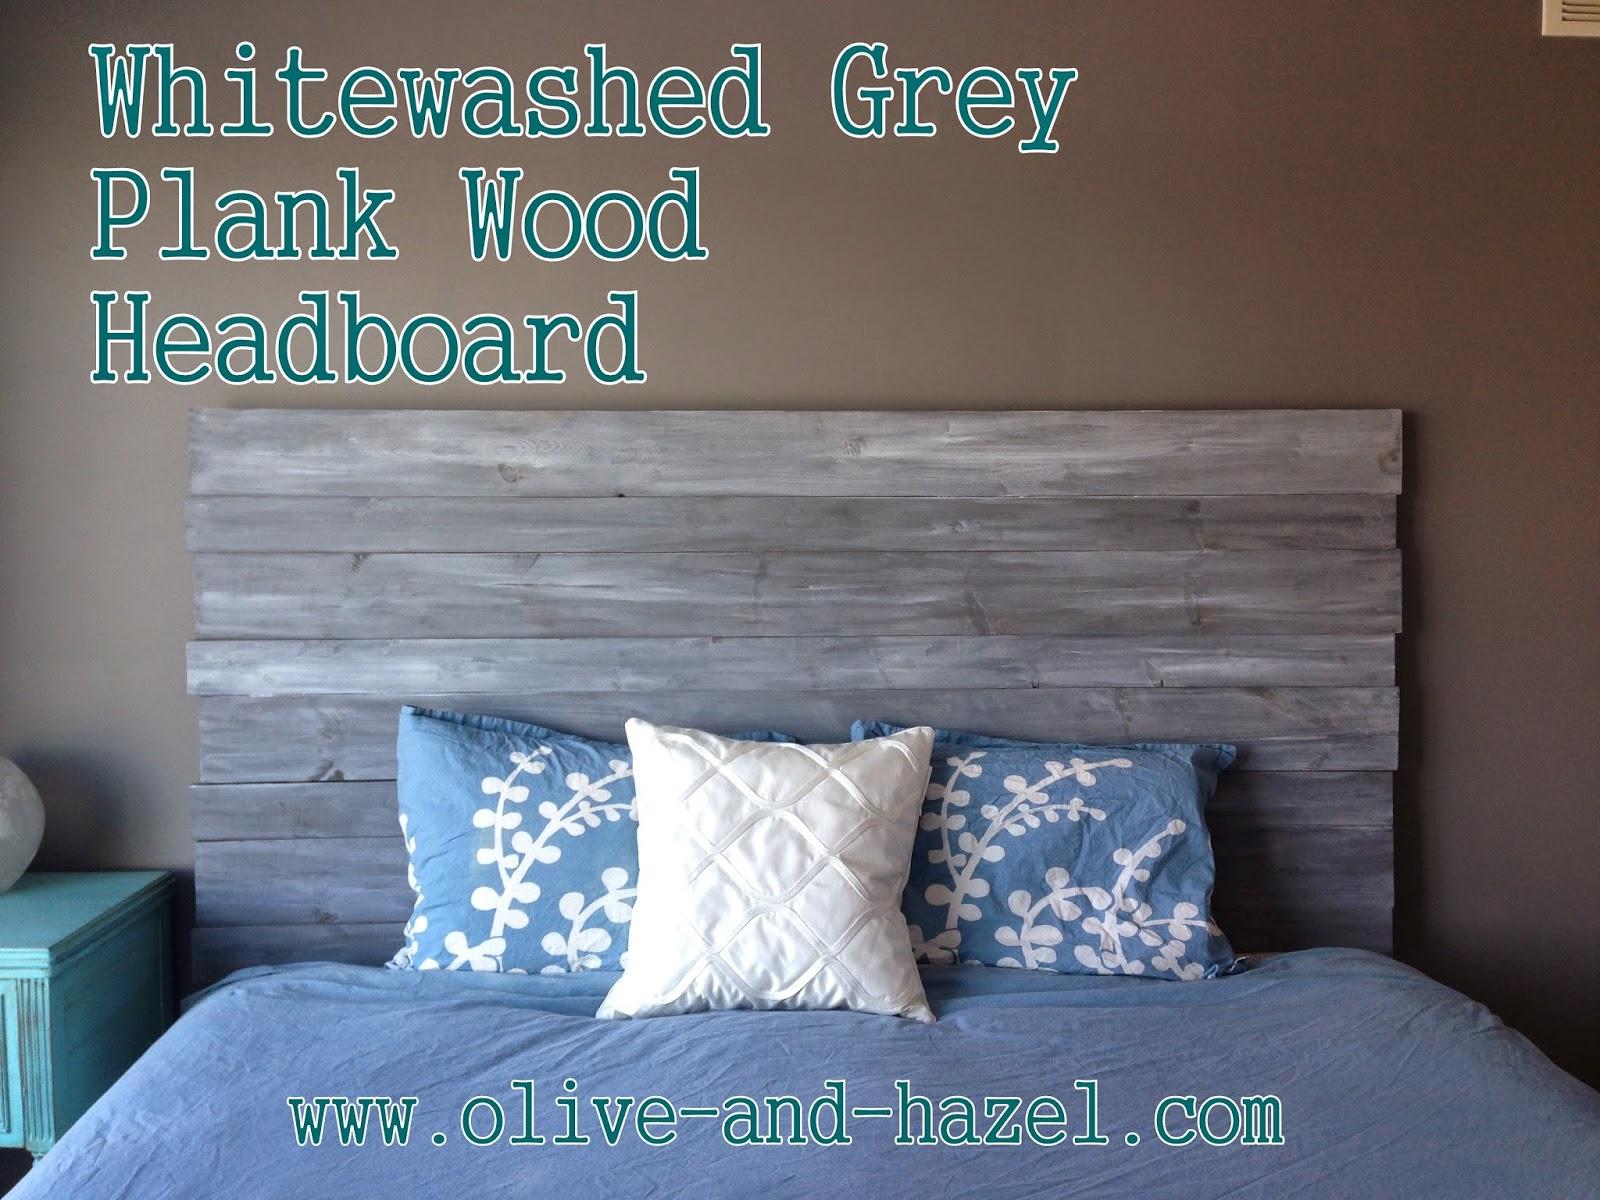 wood search pinterest pin weathered stikwood google home headboard